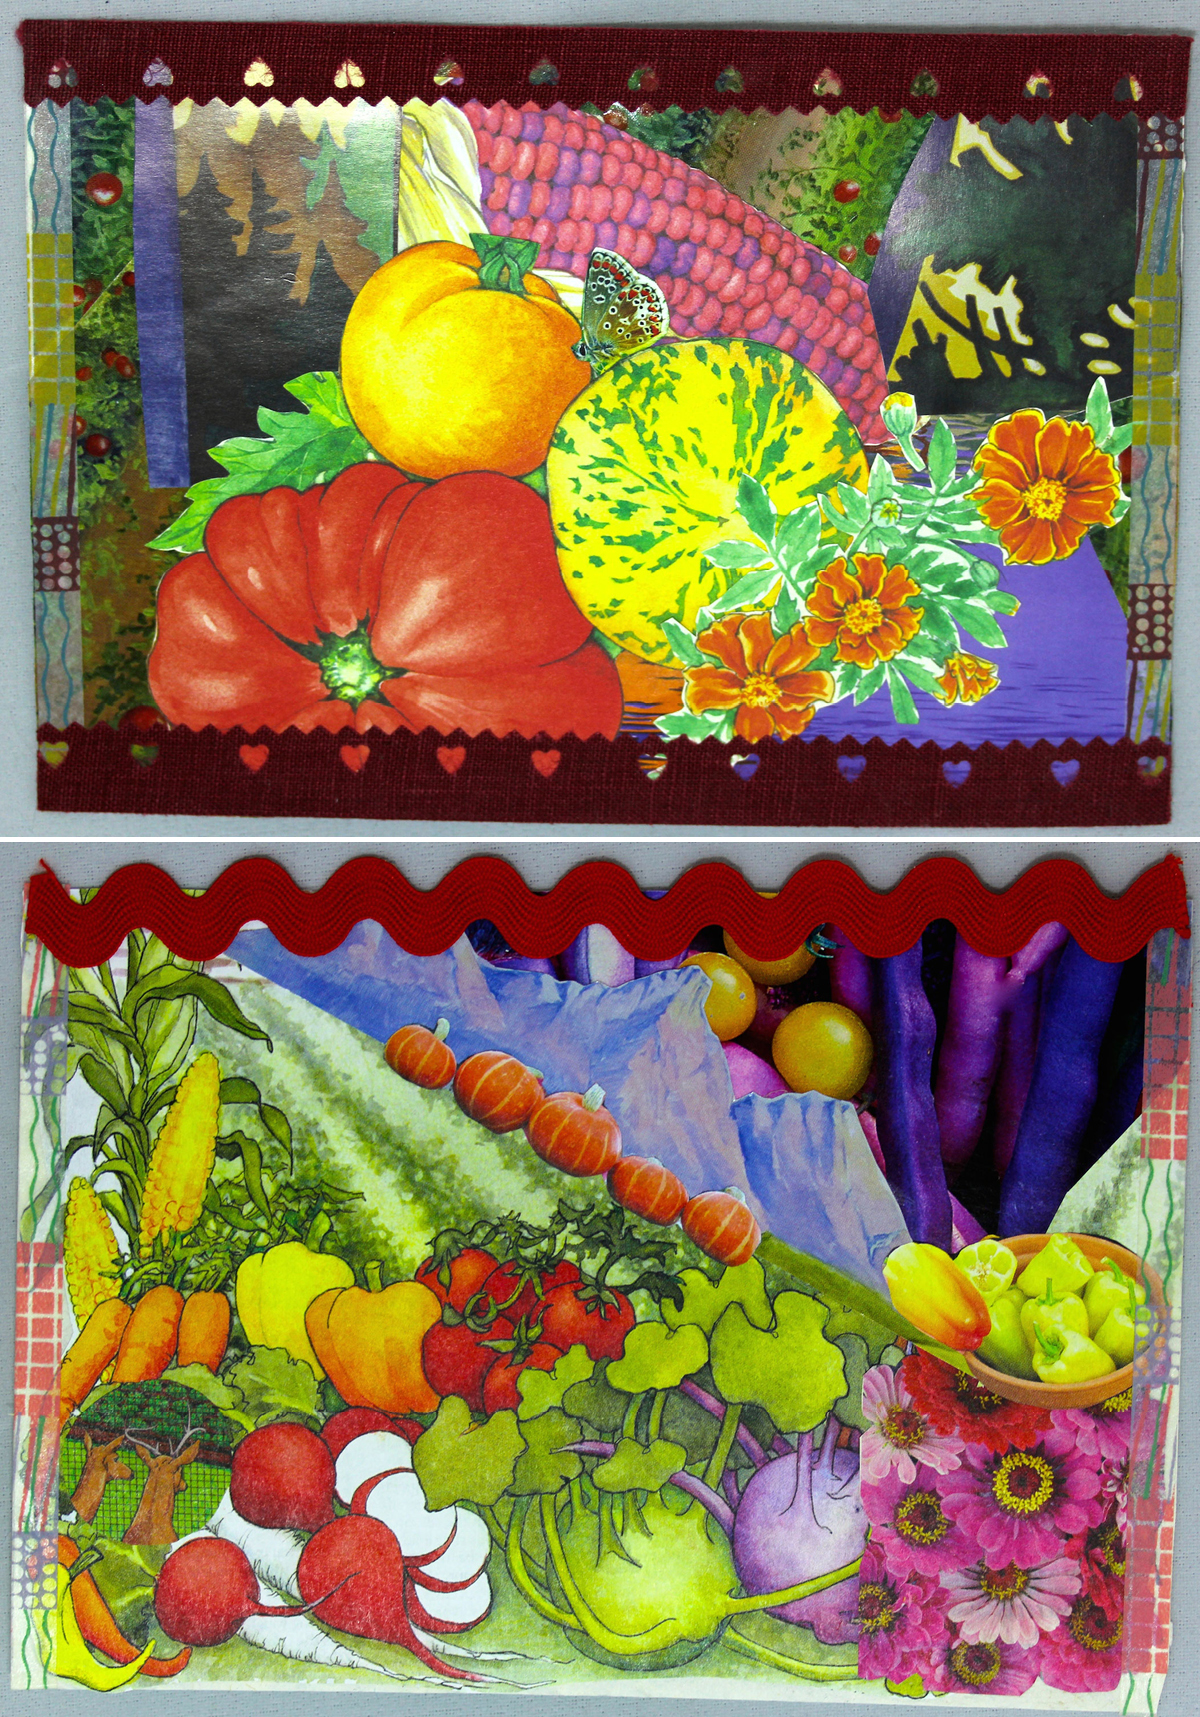 Cindy's Seed Collage